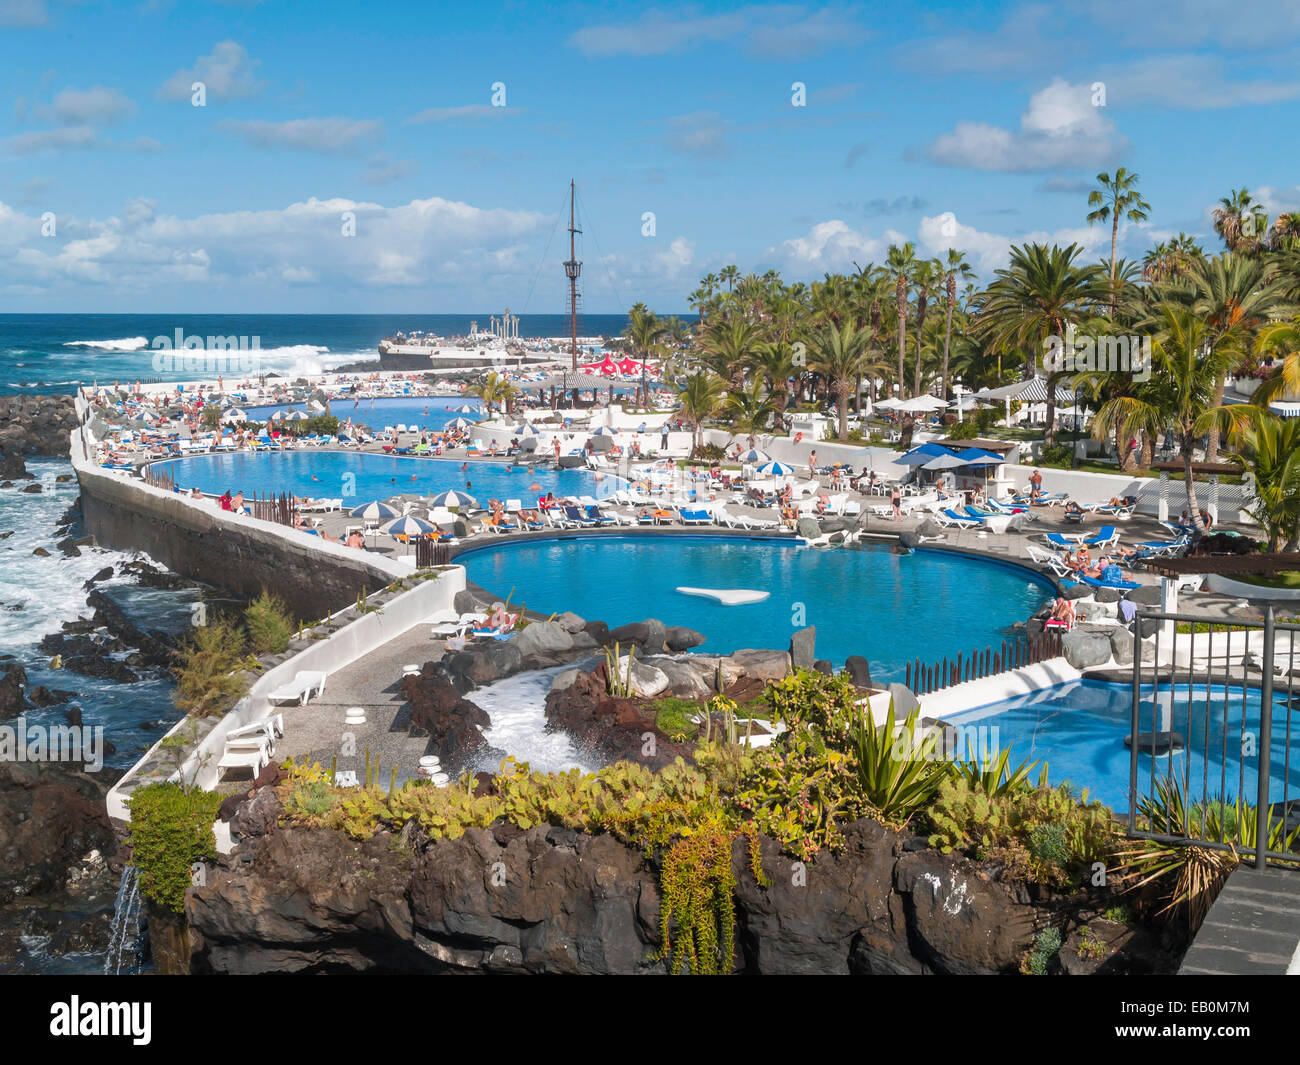 The lido san telmo or costa martianez in puerto de la cruz tenerife stock photo 75618584 alamy - Hotel san telmo puerto de la cruz tenerife ...